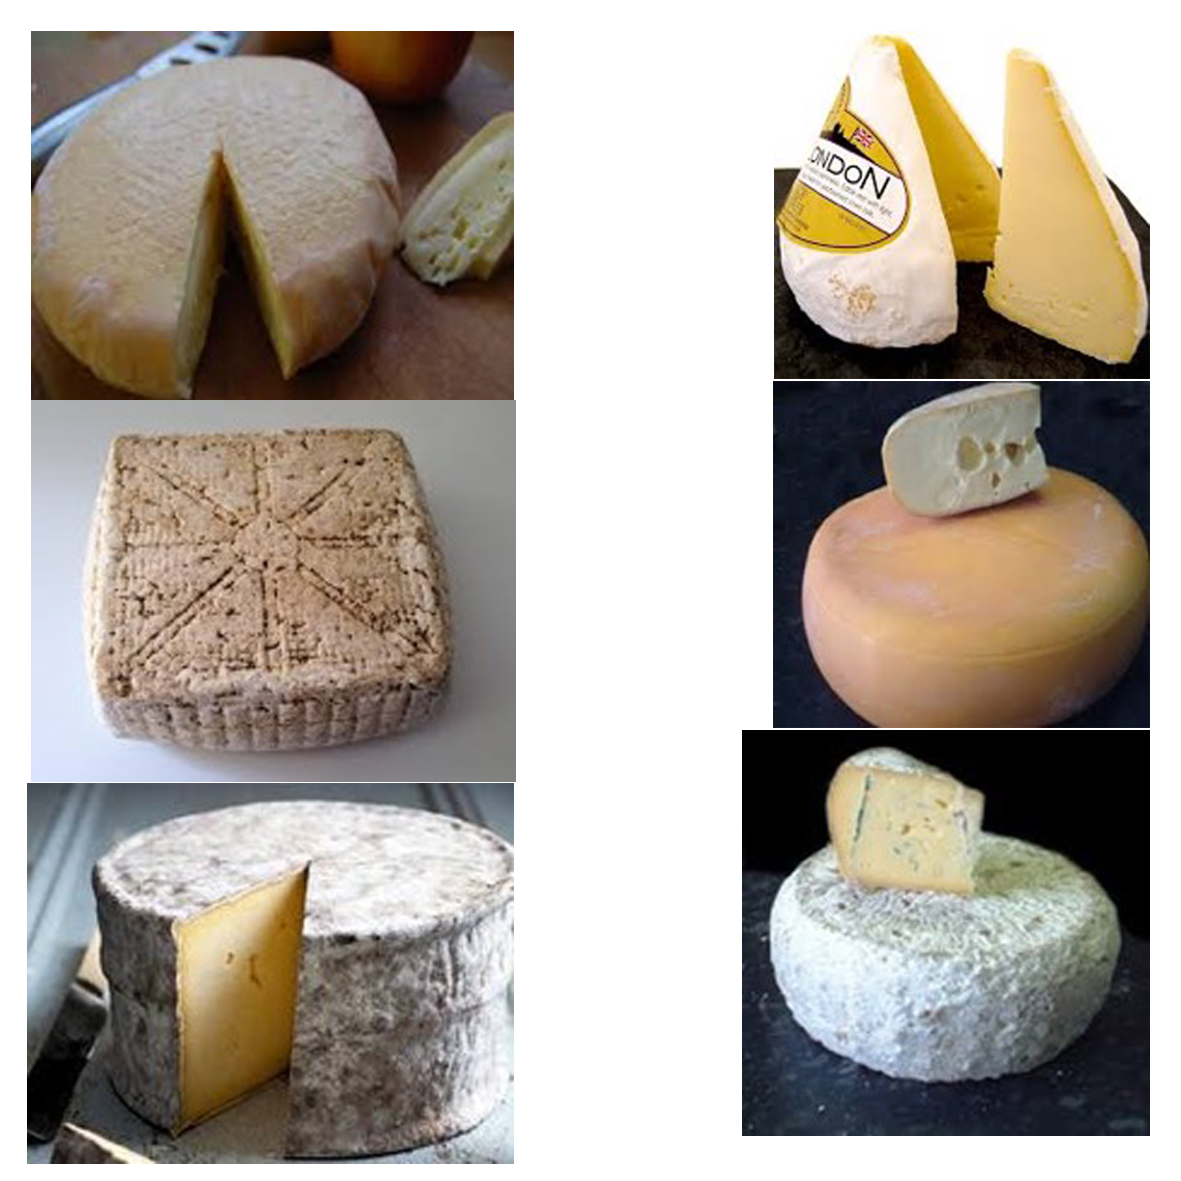 west-sussex-cheeses-hilliards copy.jpg